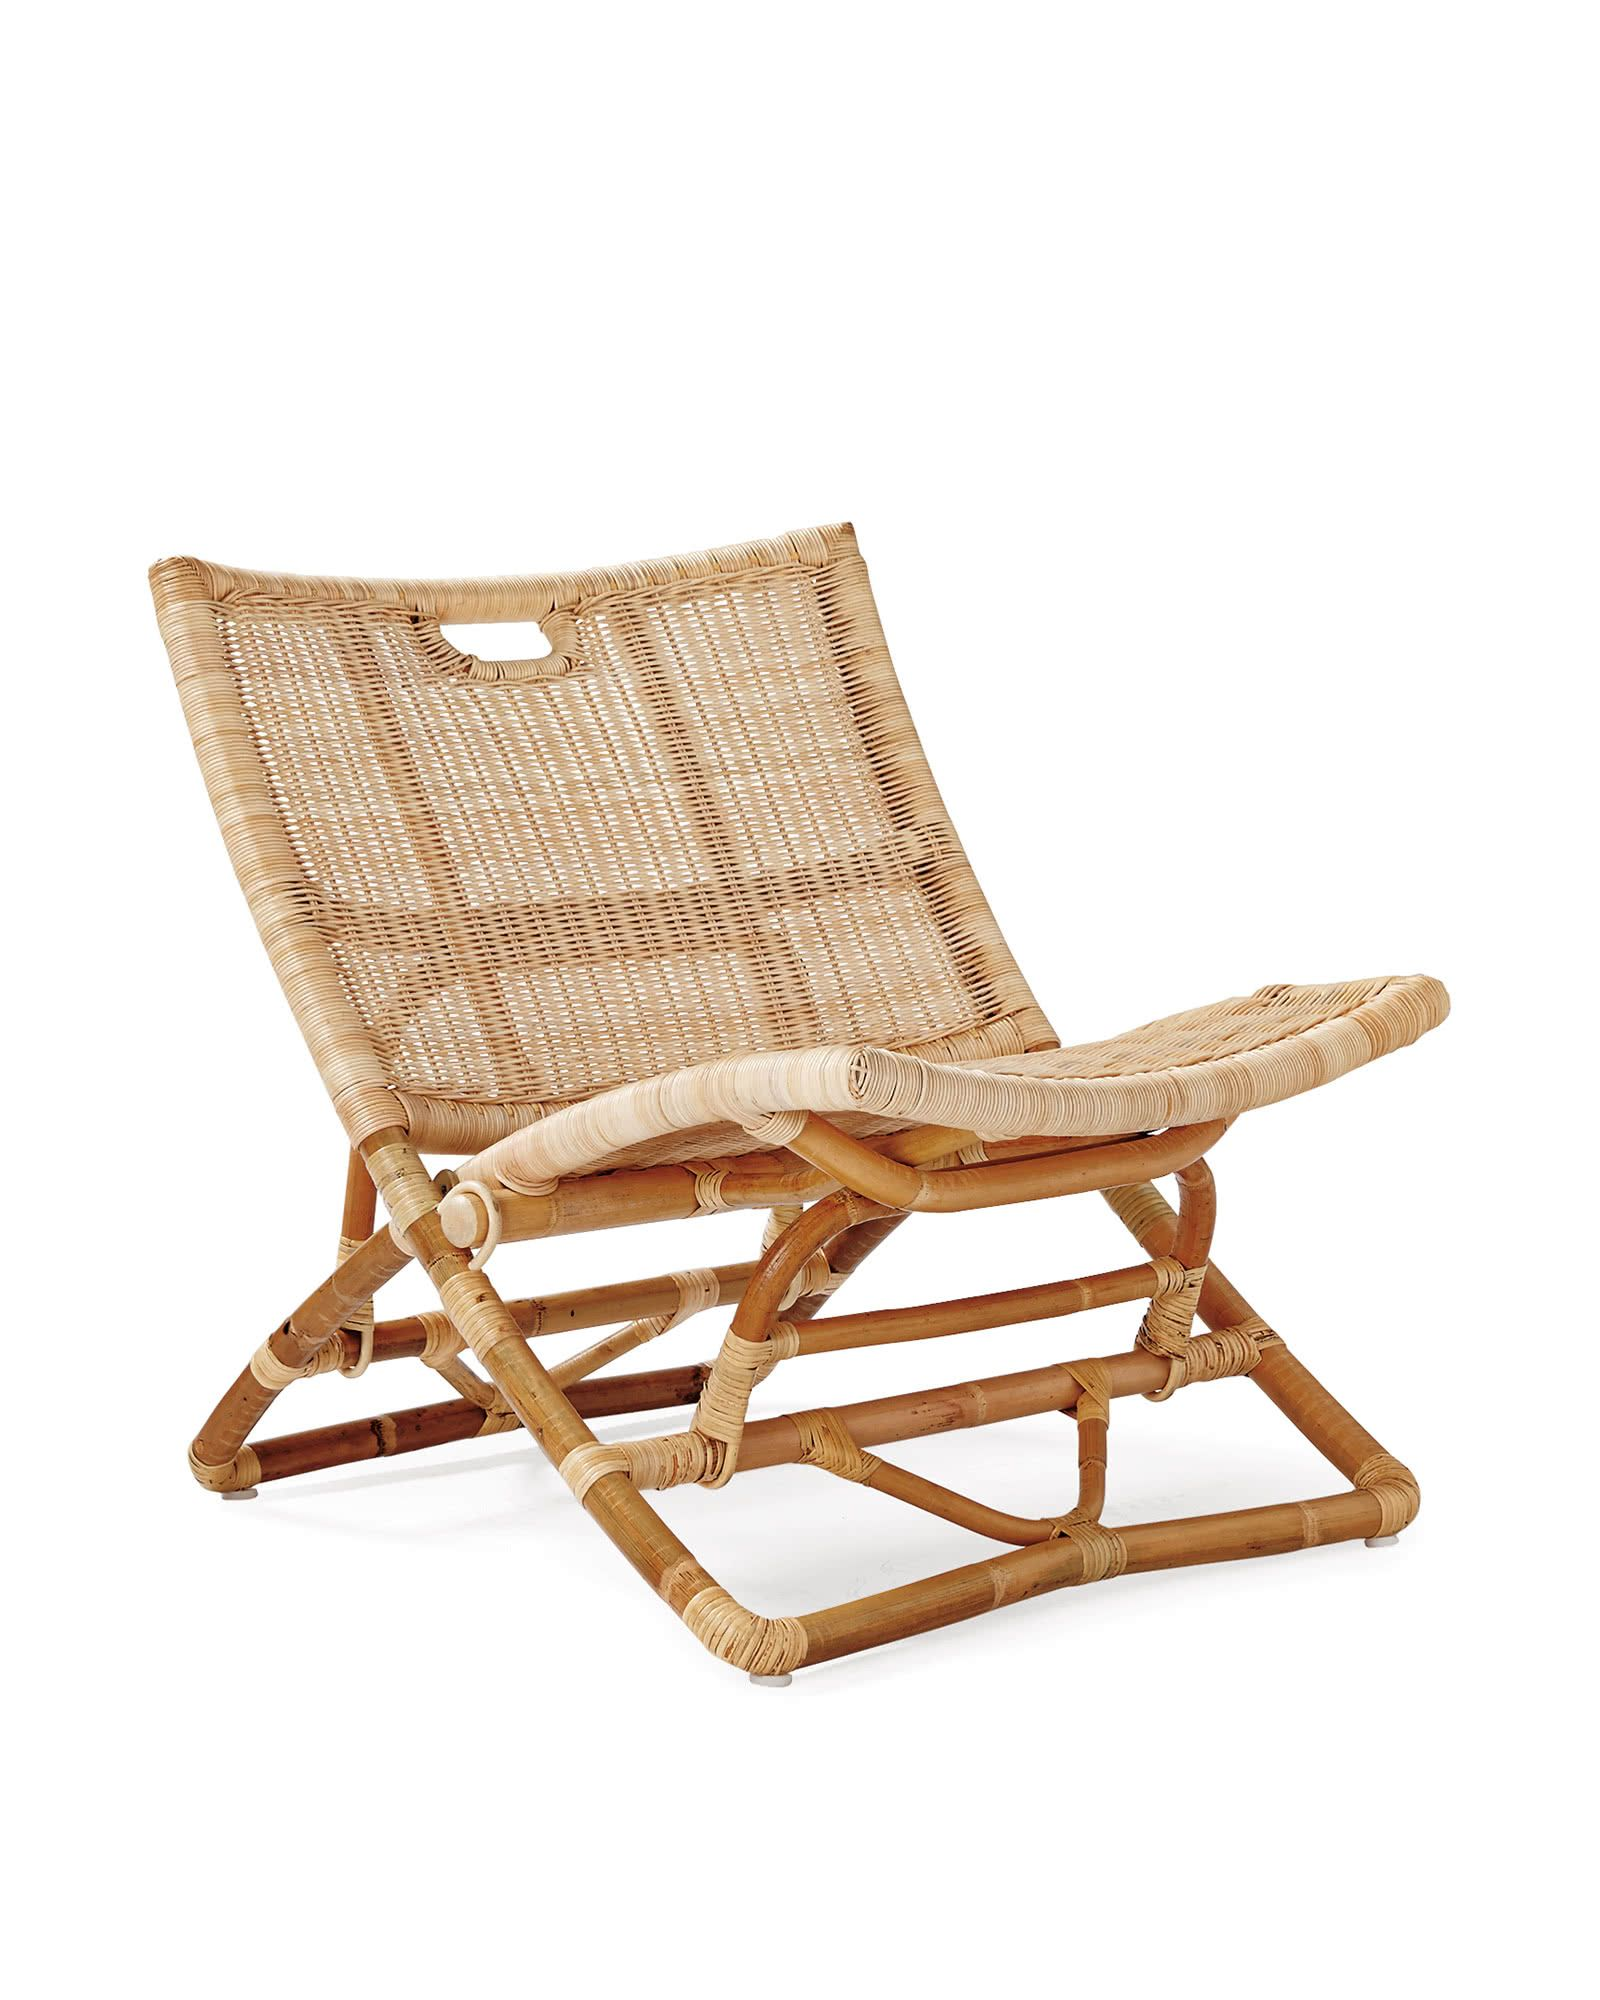 Palisades Chair - Natural  Outdoor chairs, Used outdoor furniture